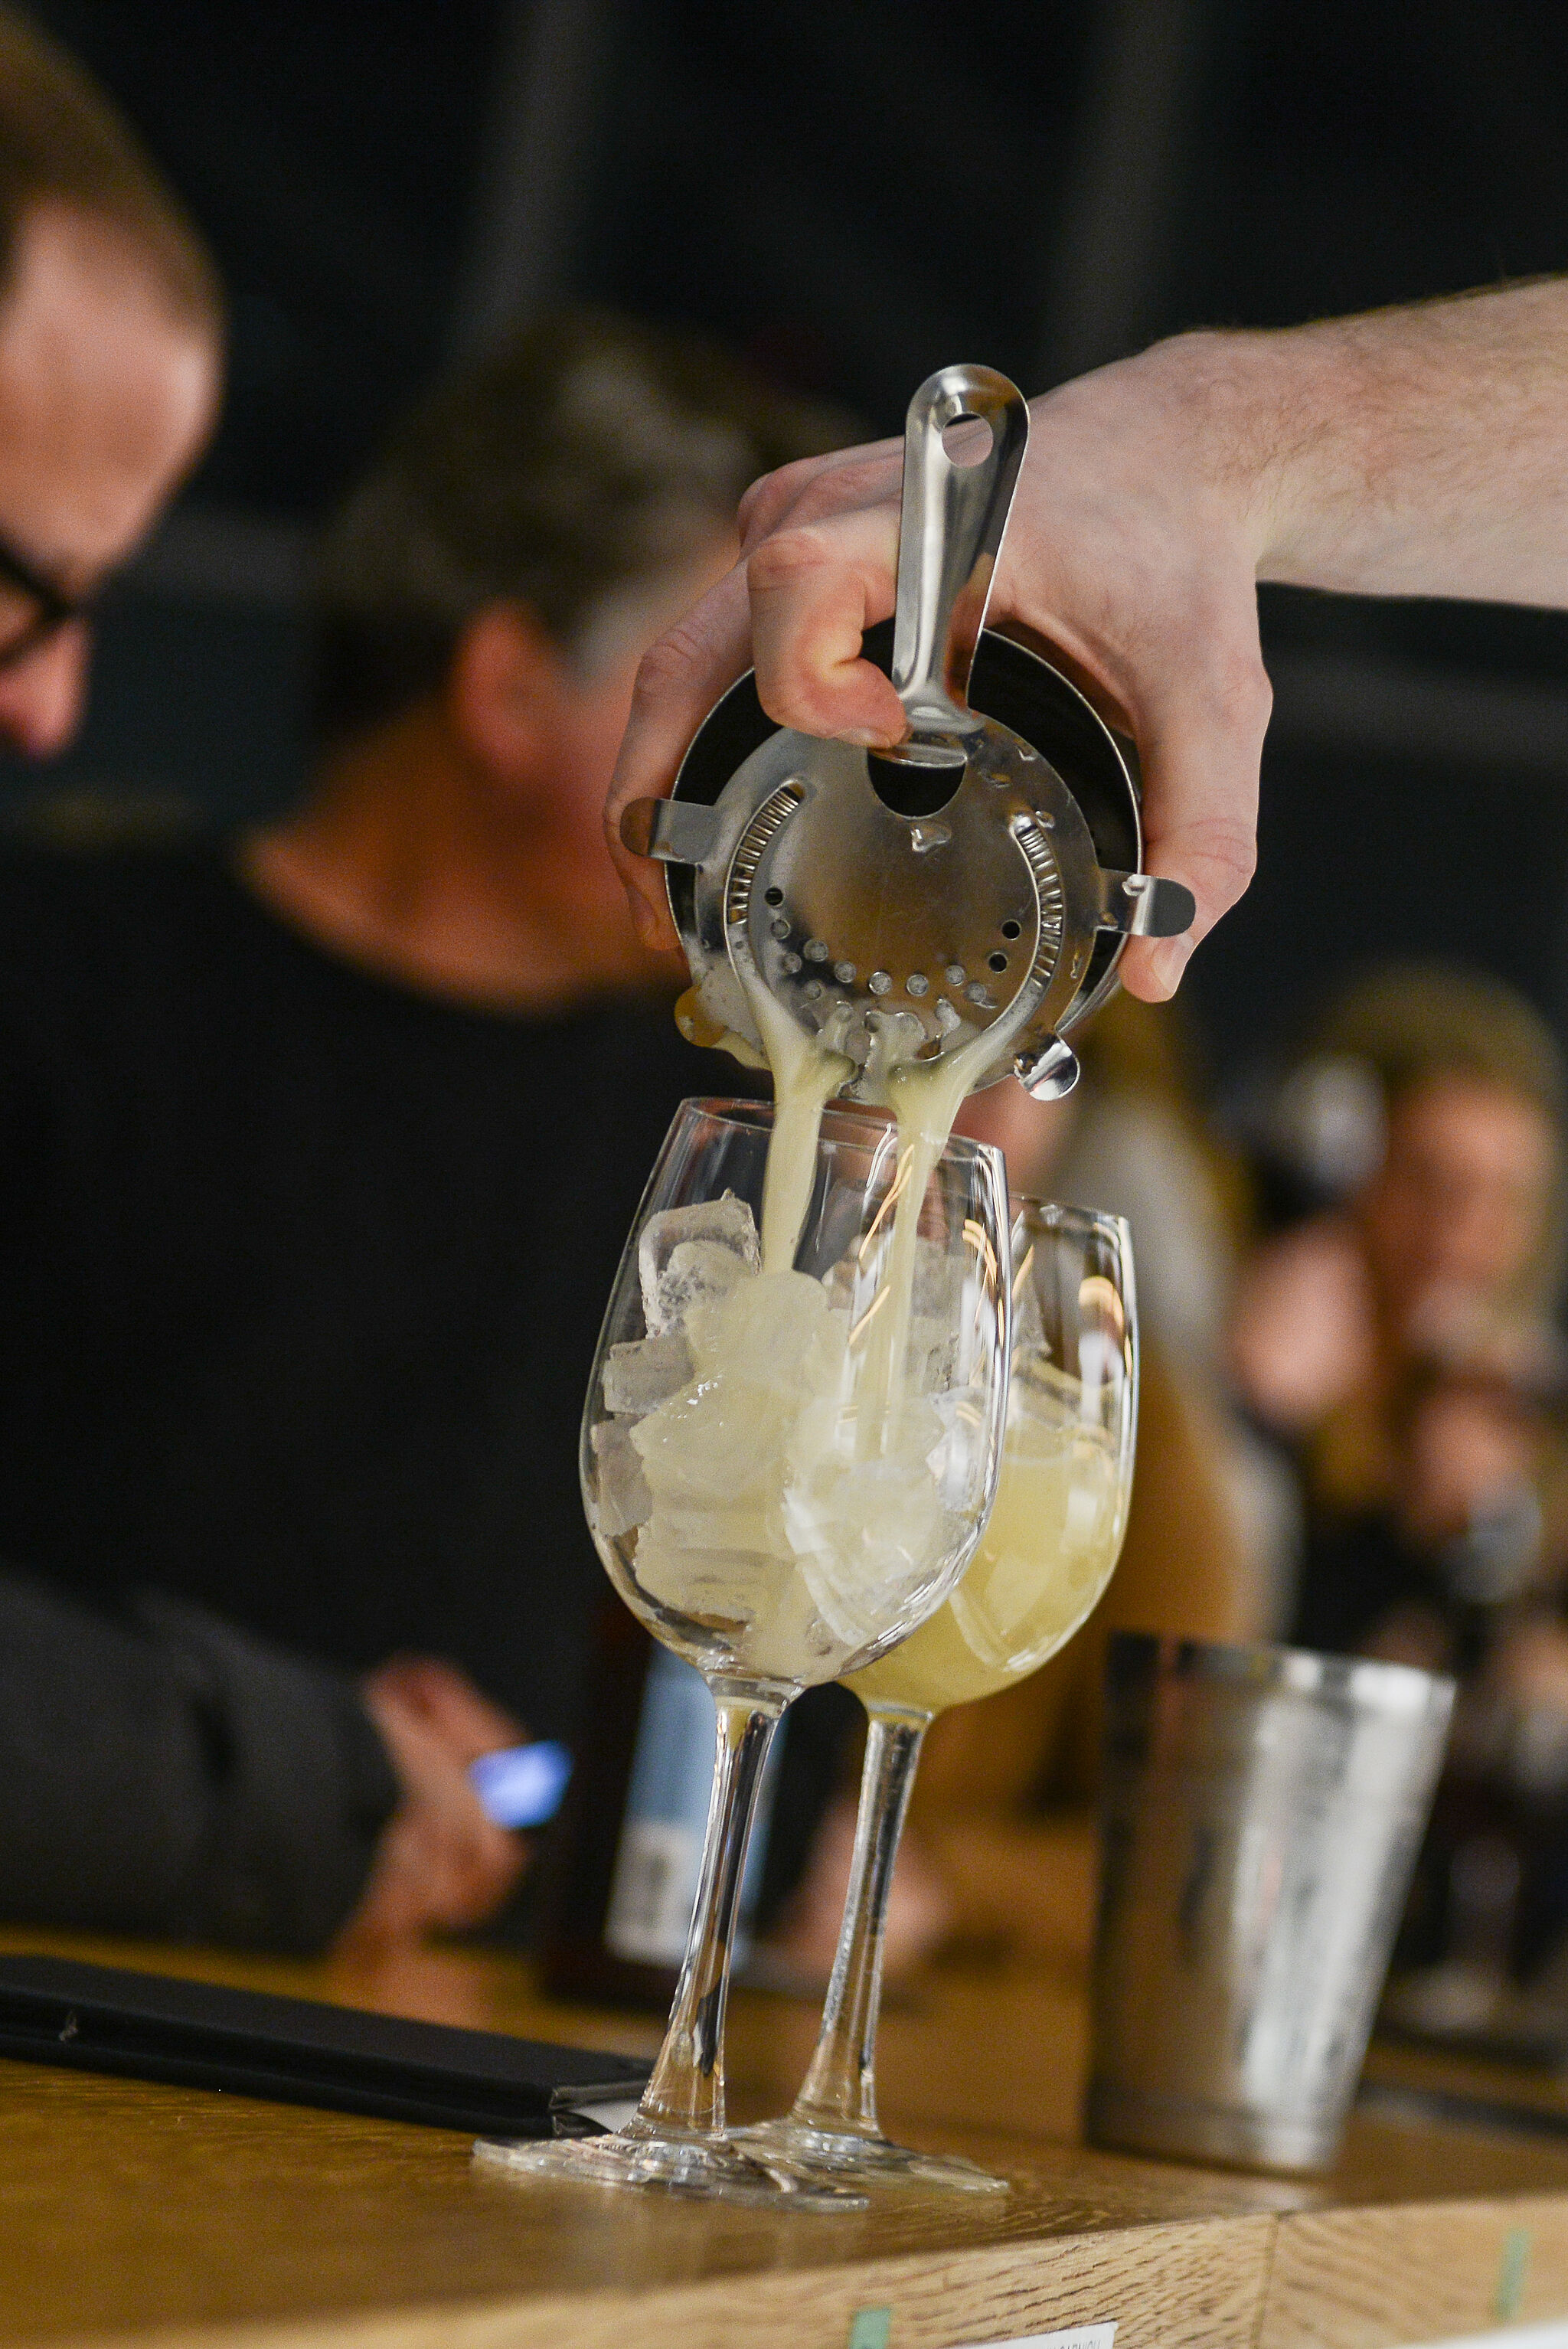 A close-up photo depicting a drink being poured.